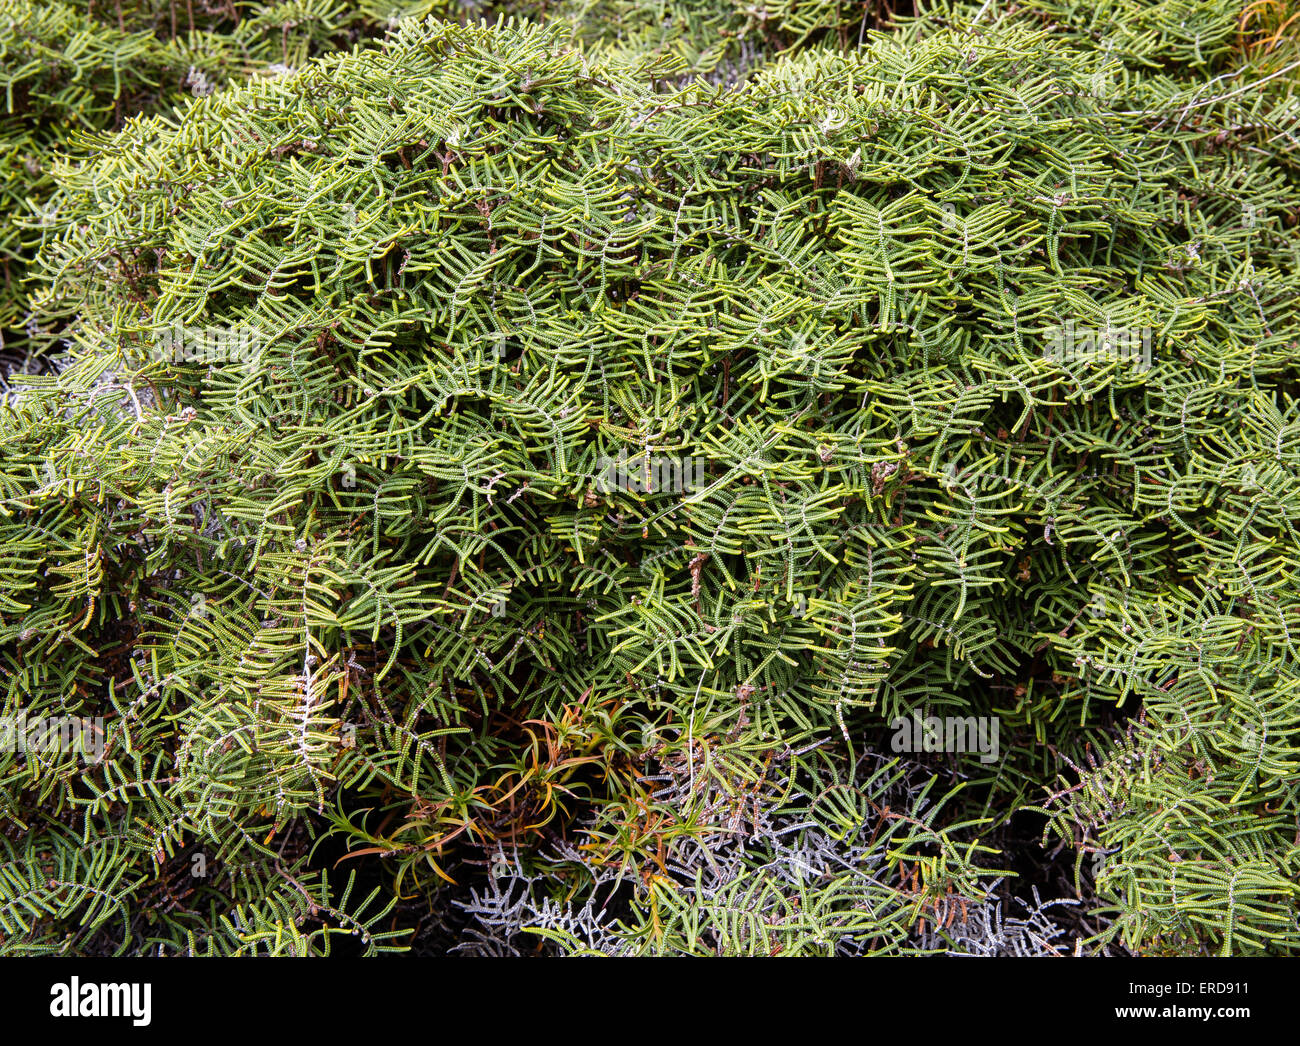 Tangle Fern Gleichenia dicarpa a dense mat forming fern of open subalpine scrub of New Zealand - Stock Image